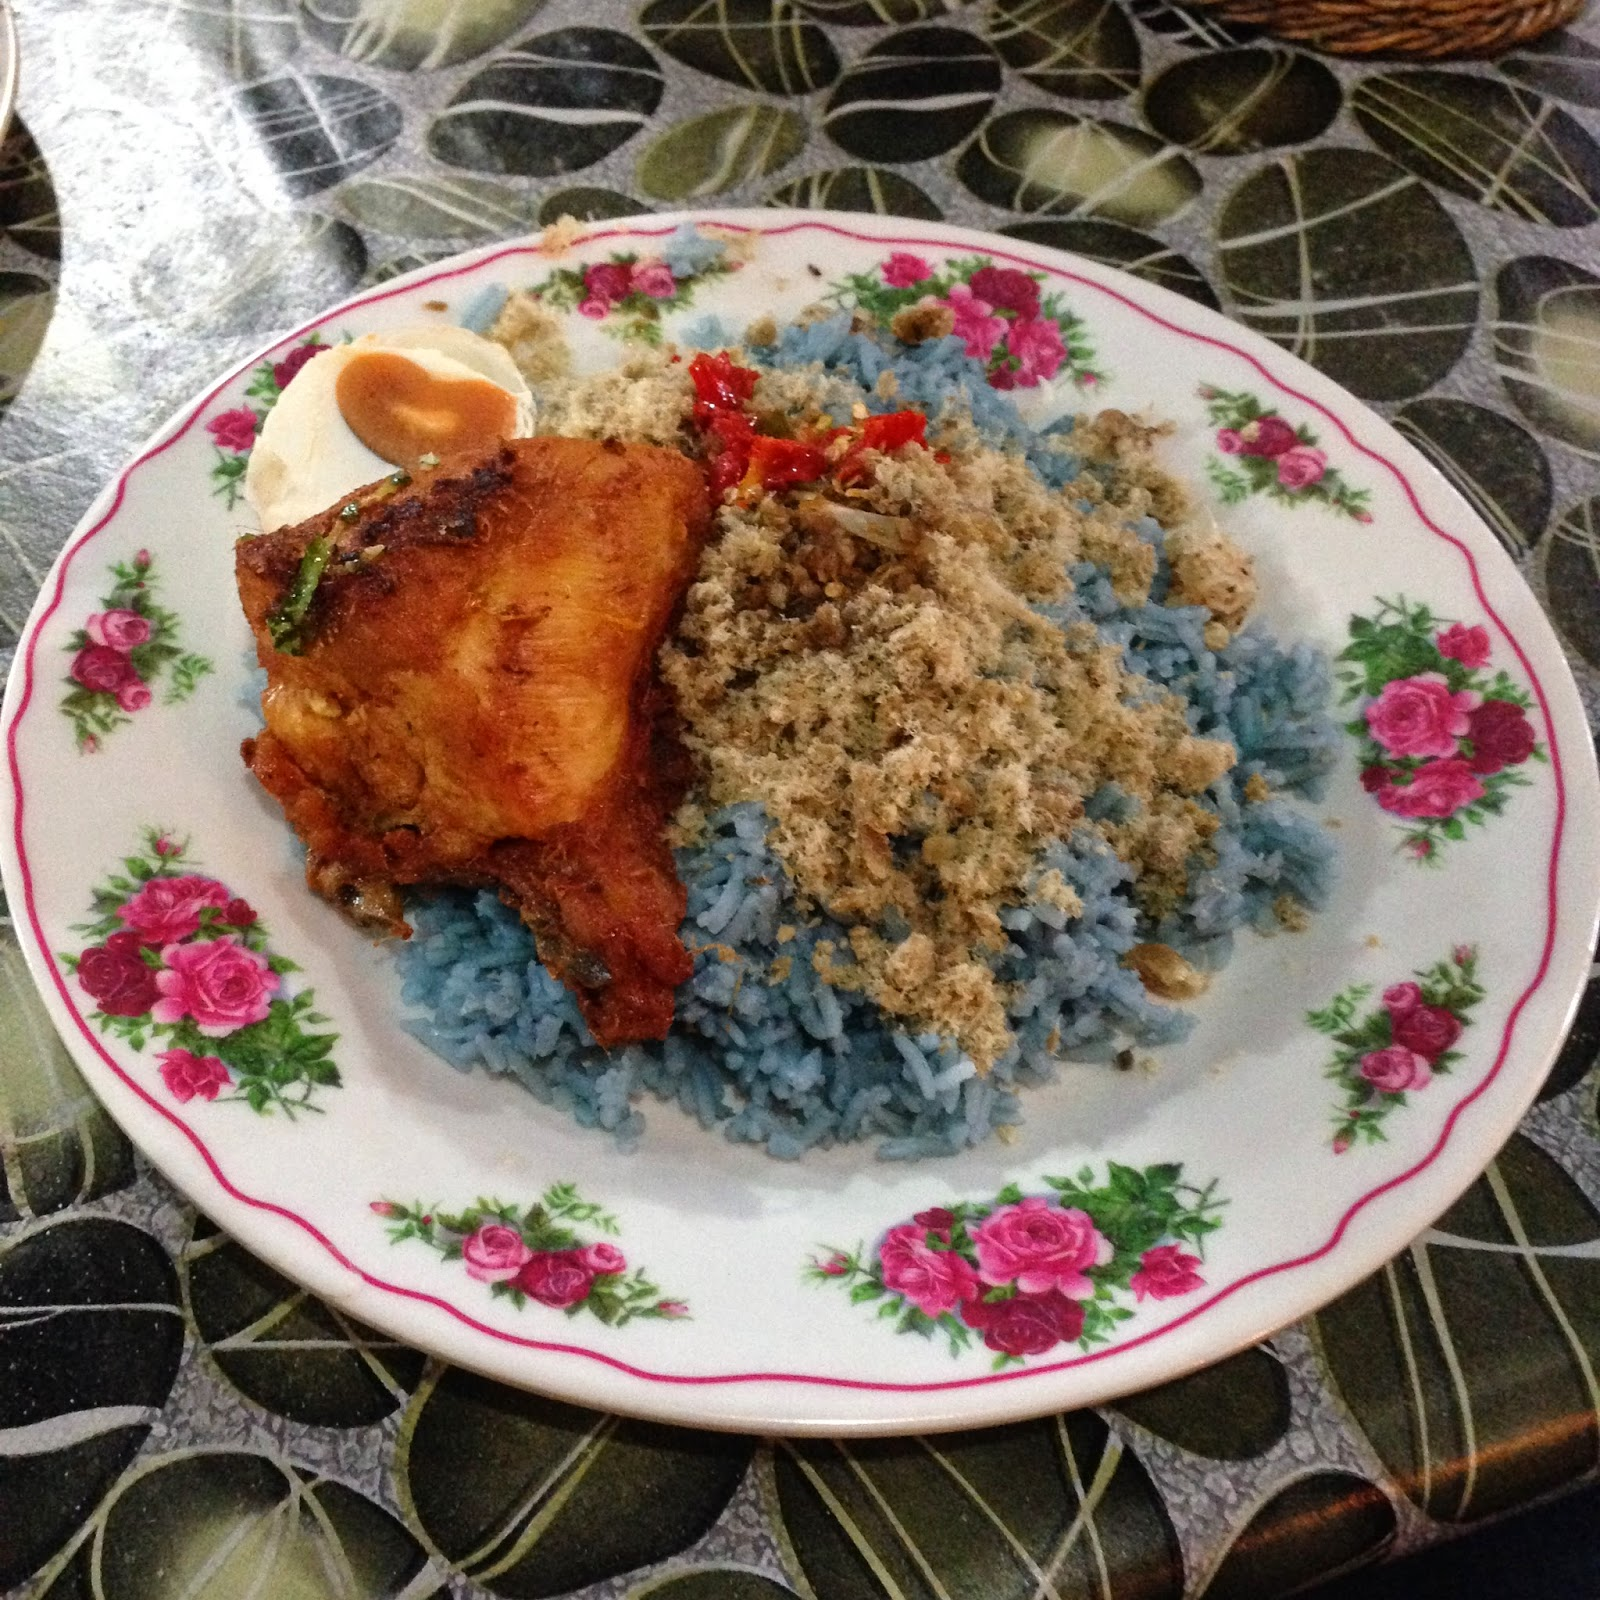 Nasi kerabu with no vegetable